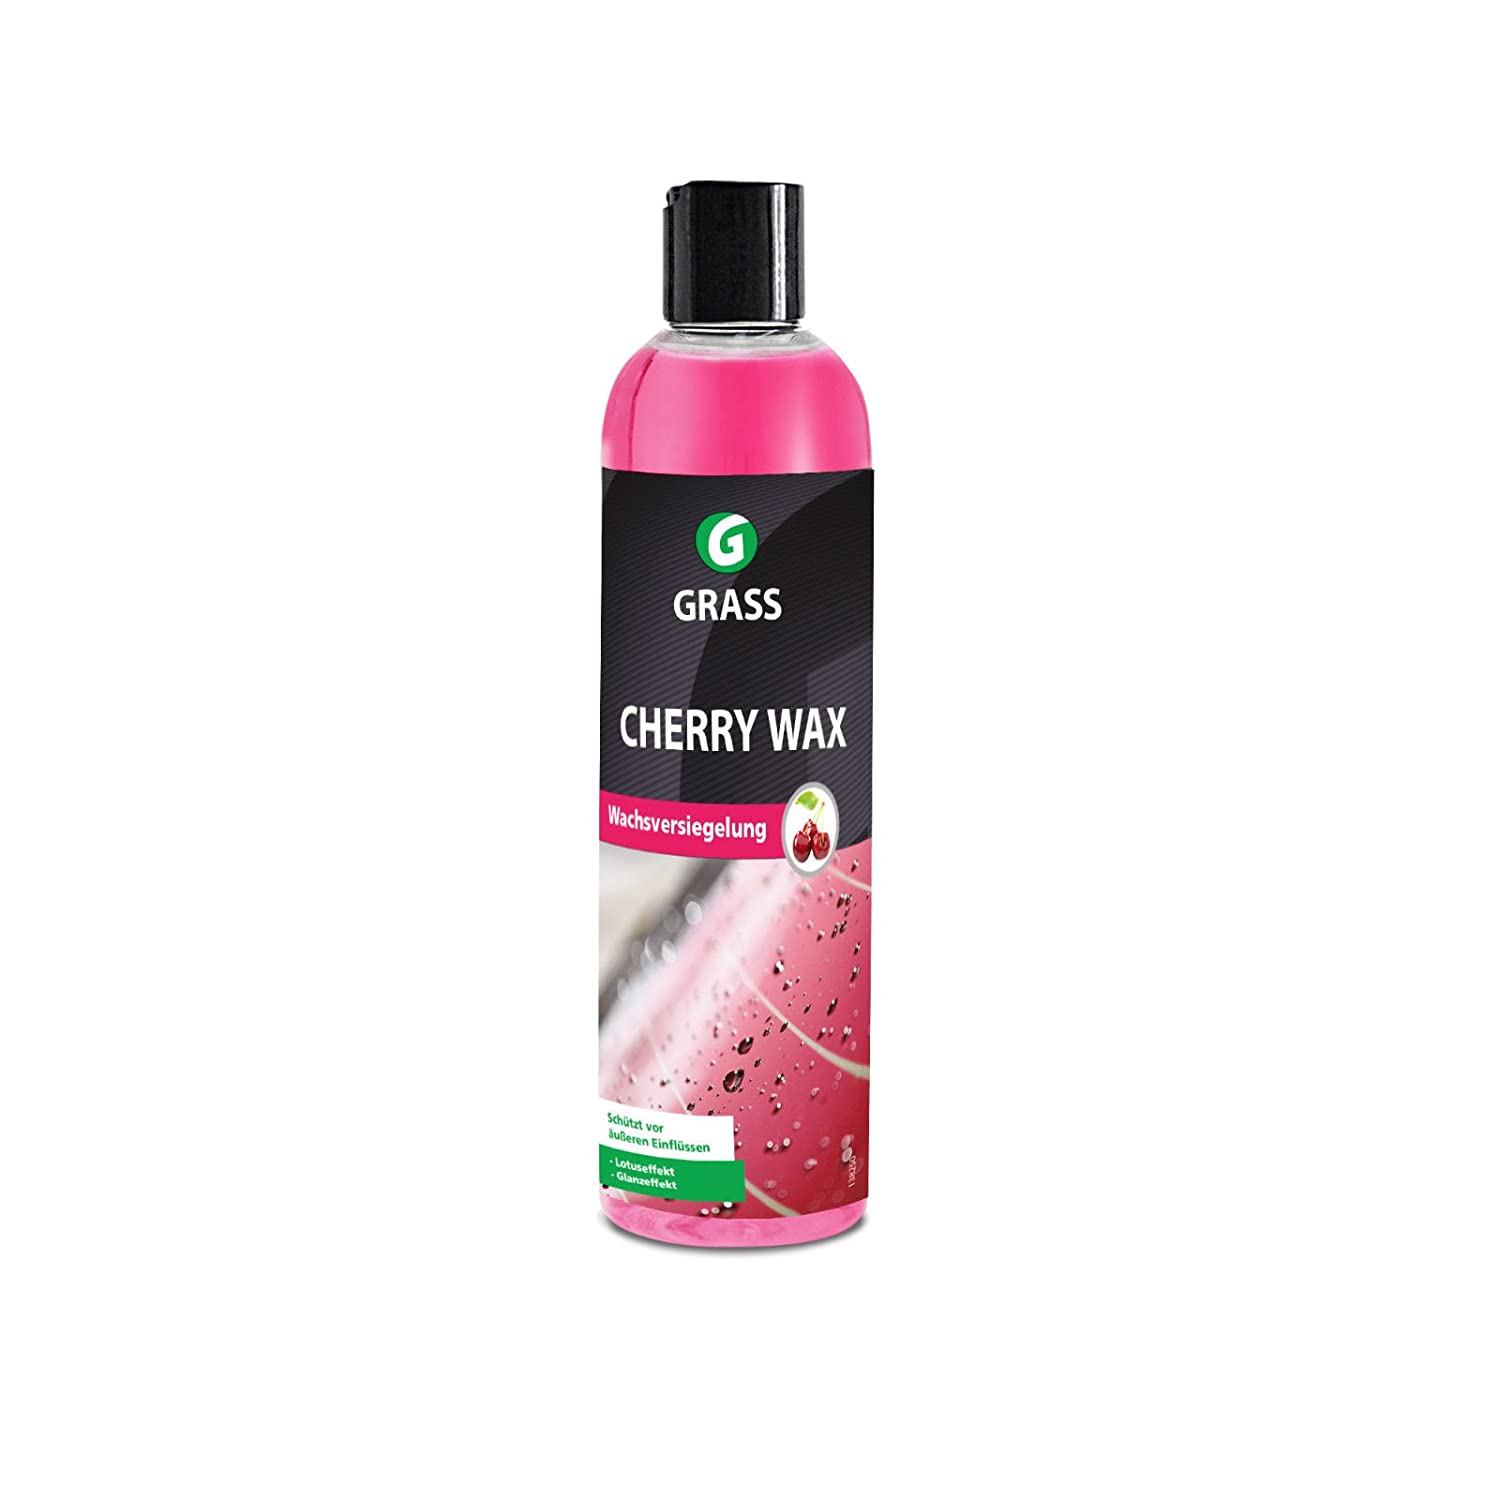 Unbekannt Cherry Wax 250ml Grass / PerfectClean24®